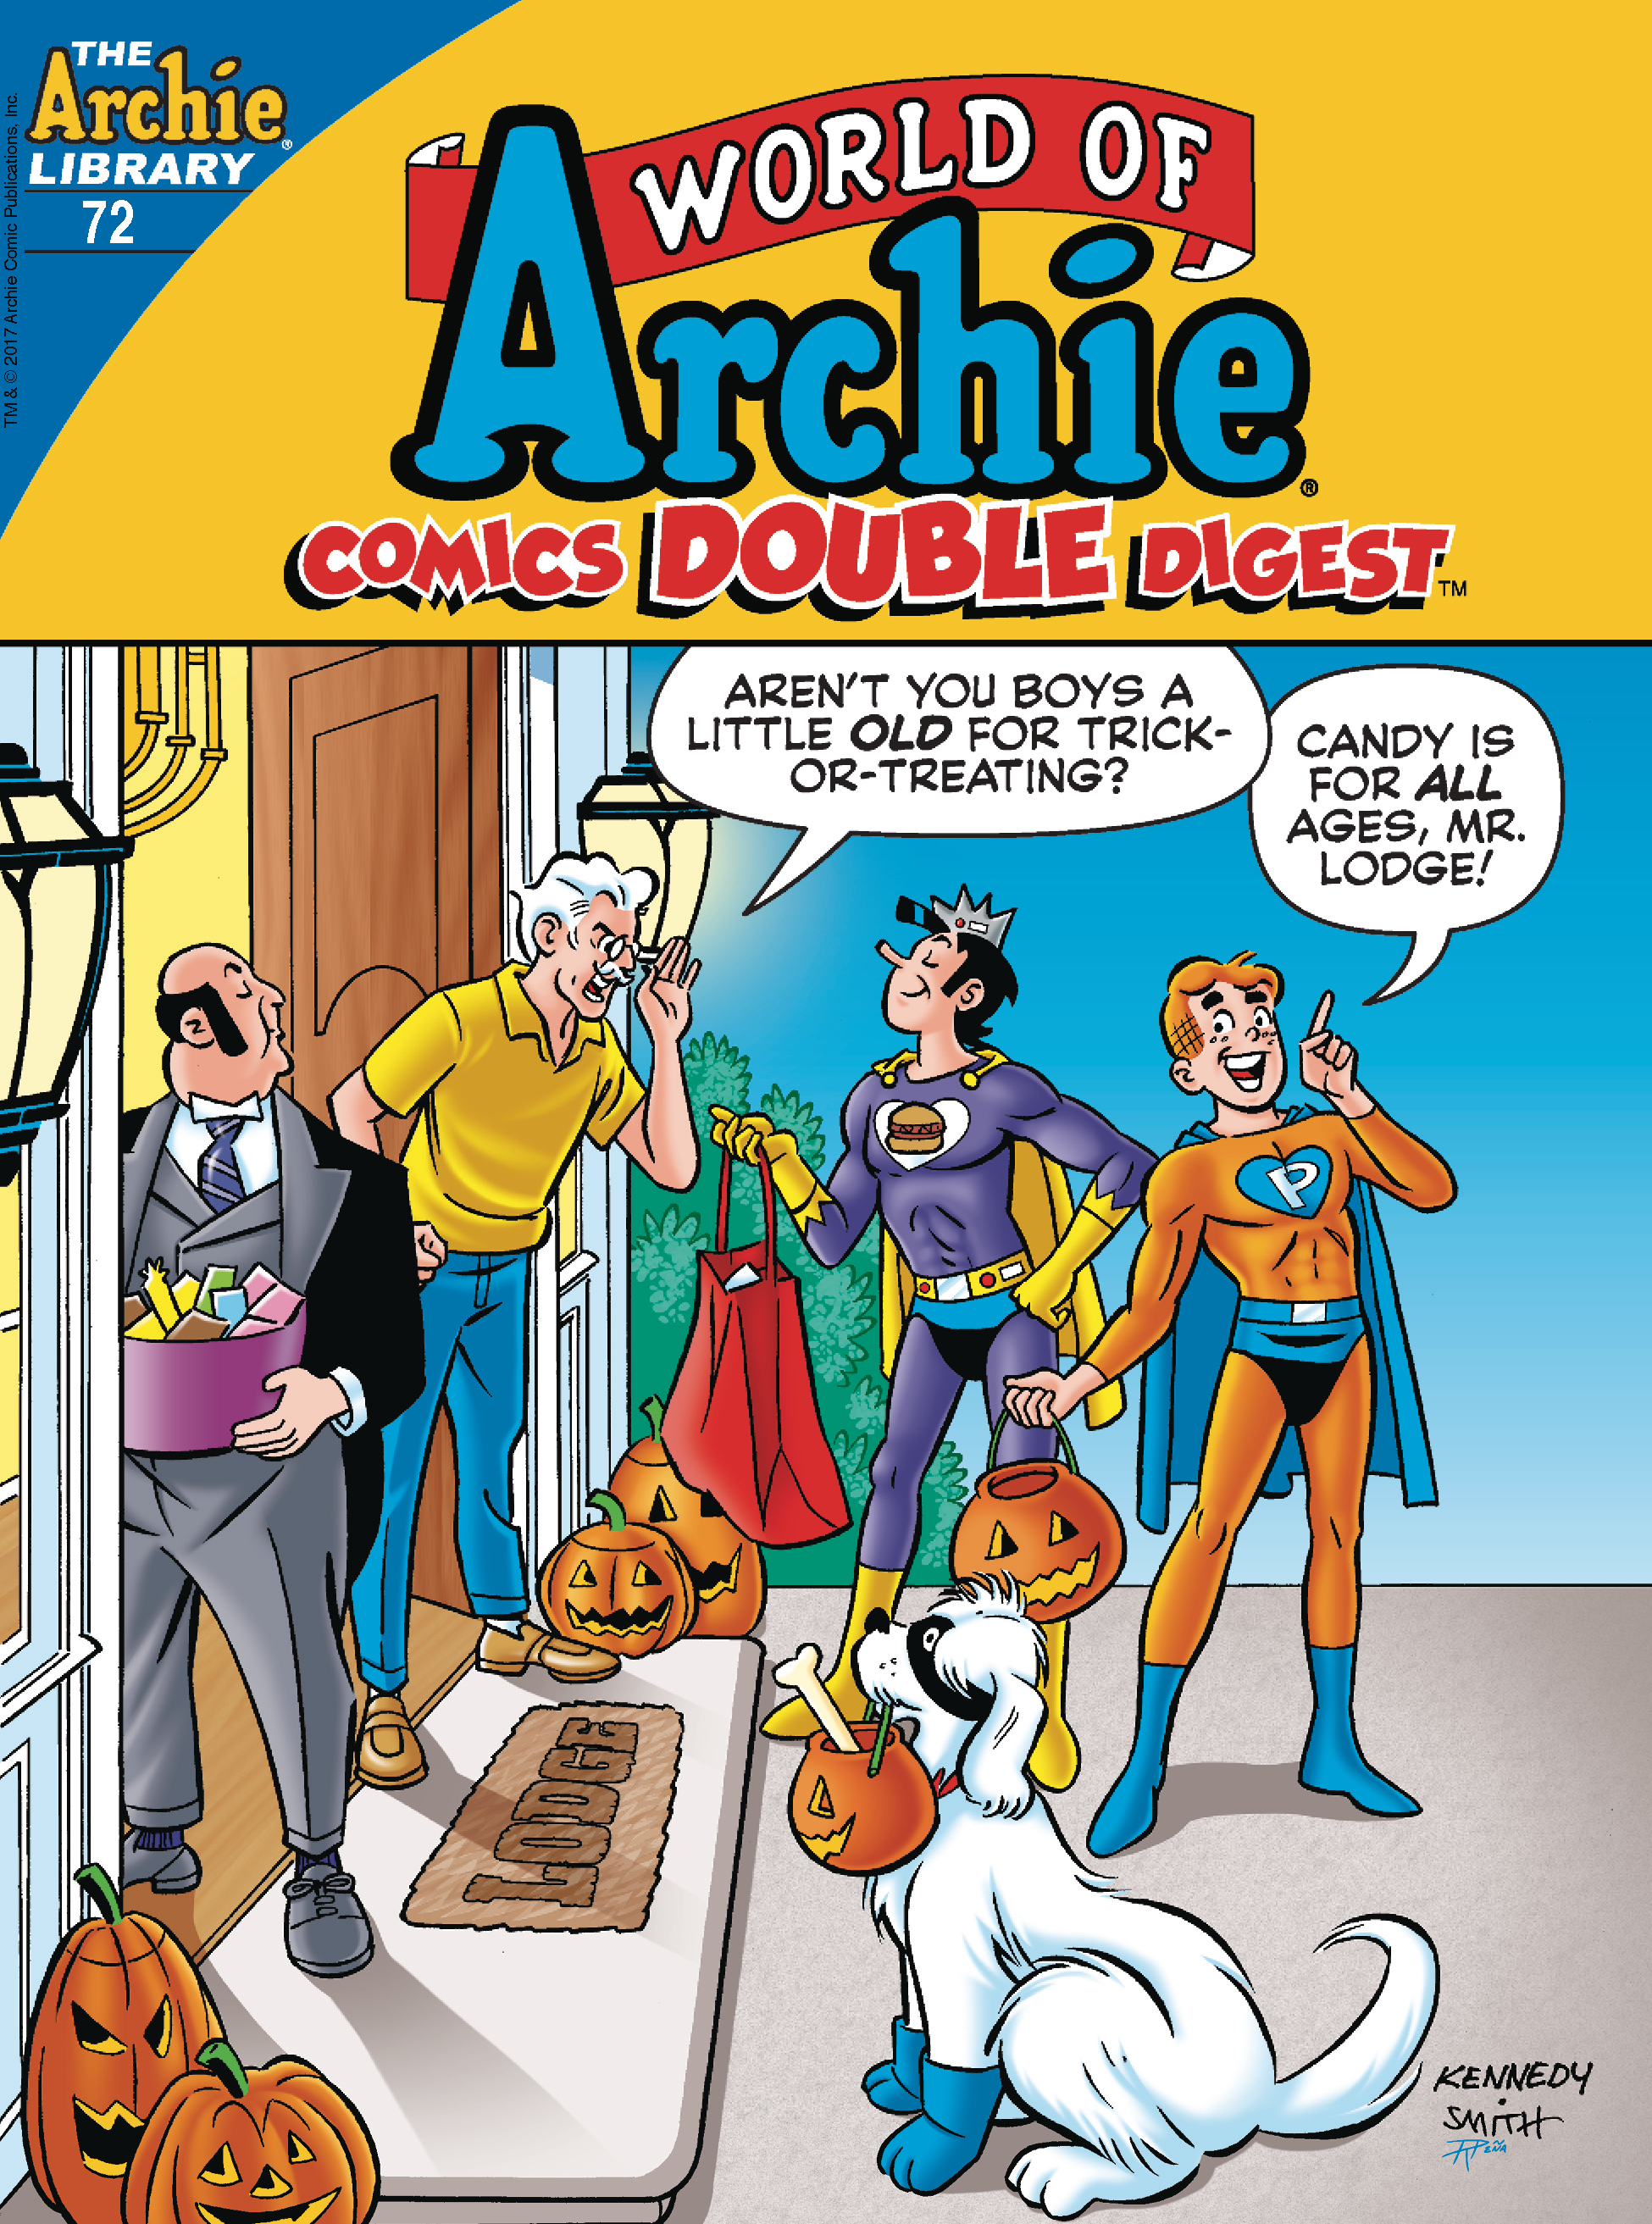 WORLD OF ARCHIE COMIC DOUBLE DIGEST #72